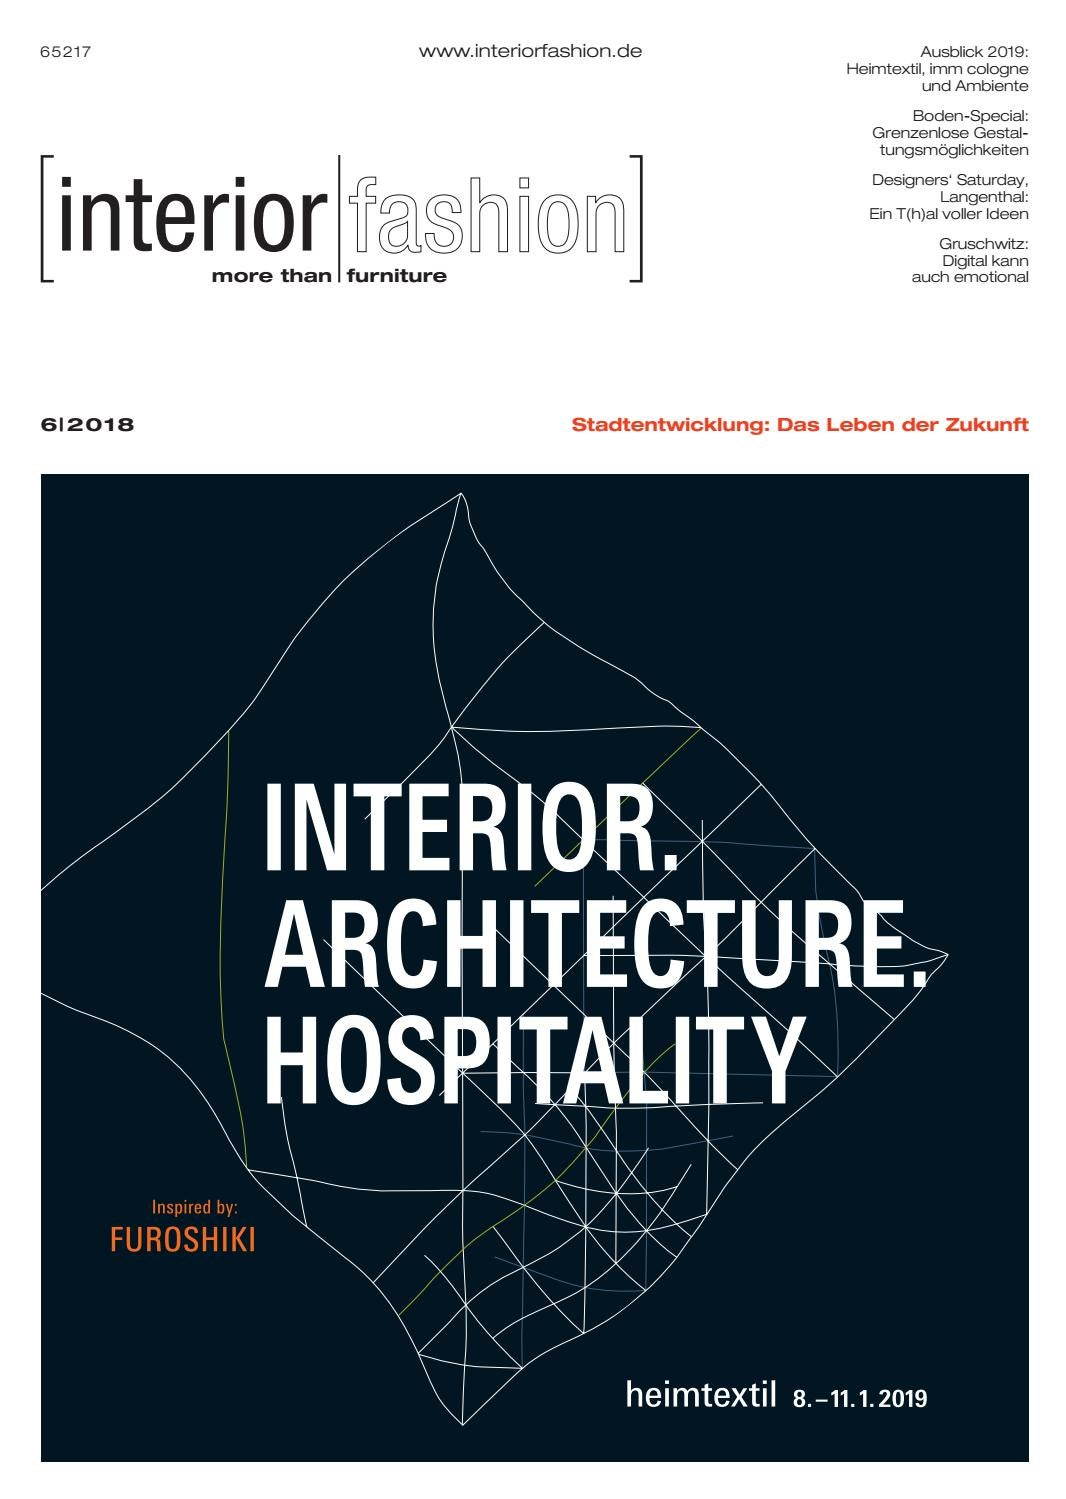 Stauraum Duden Interiorfashion 6 2018 By Interiorfashion Issuu